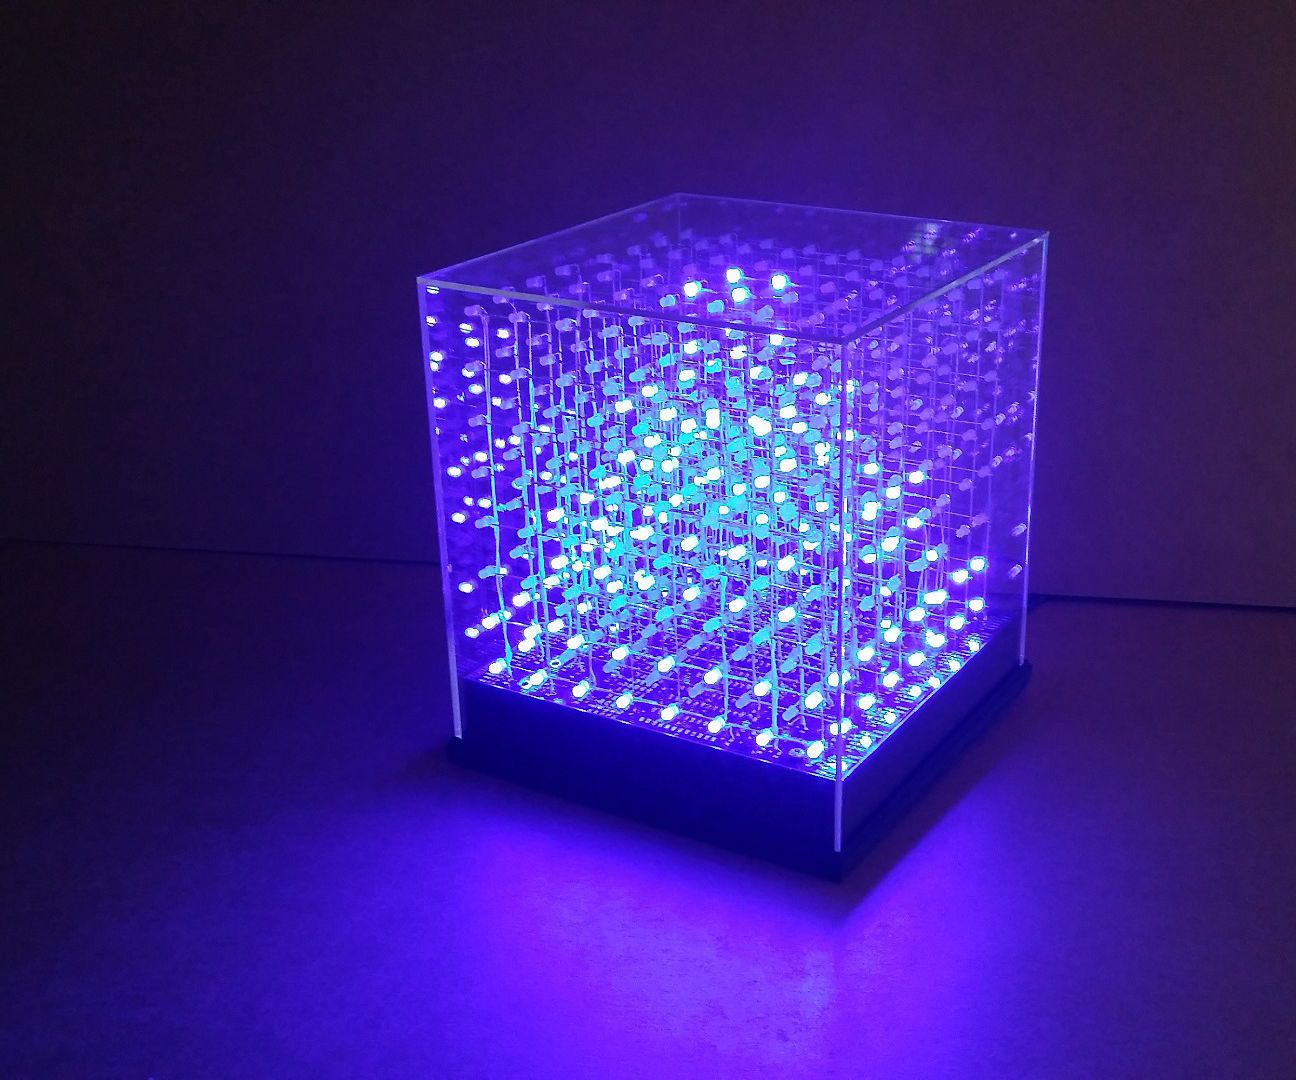 Jollicube An 8x8x8 Led Cube Spi Diy Pinterest Arduino Camping Light With Dimmer Cubes Never Fails To Impress Us Watching Some Animations On 7x7x7 Or Larger Can Be Very Mesmerizingwe Have Long Wanted Build One Of These